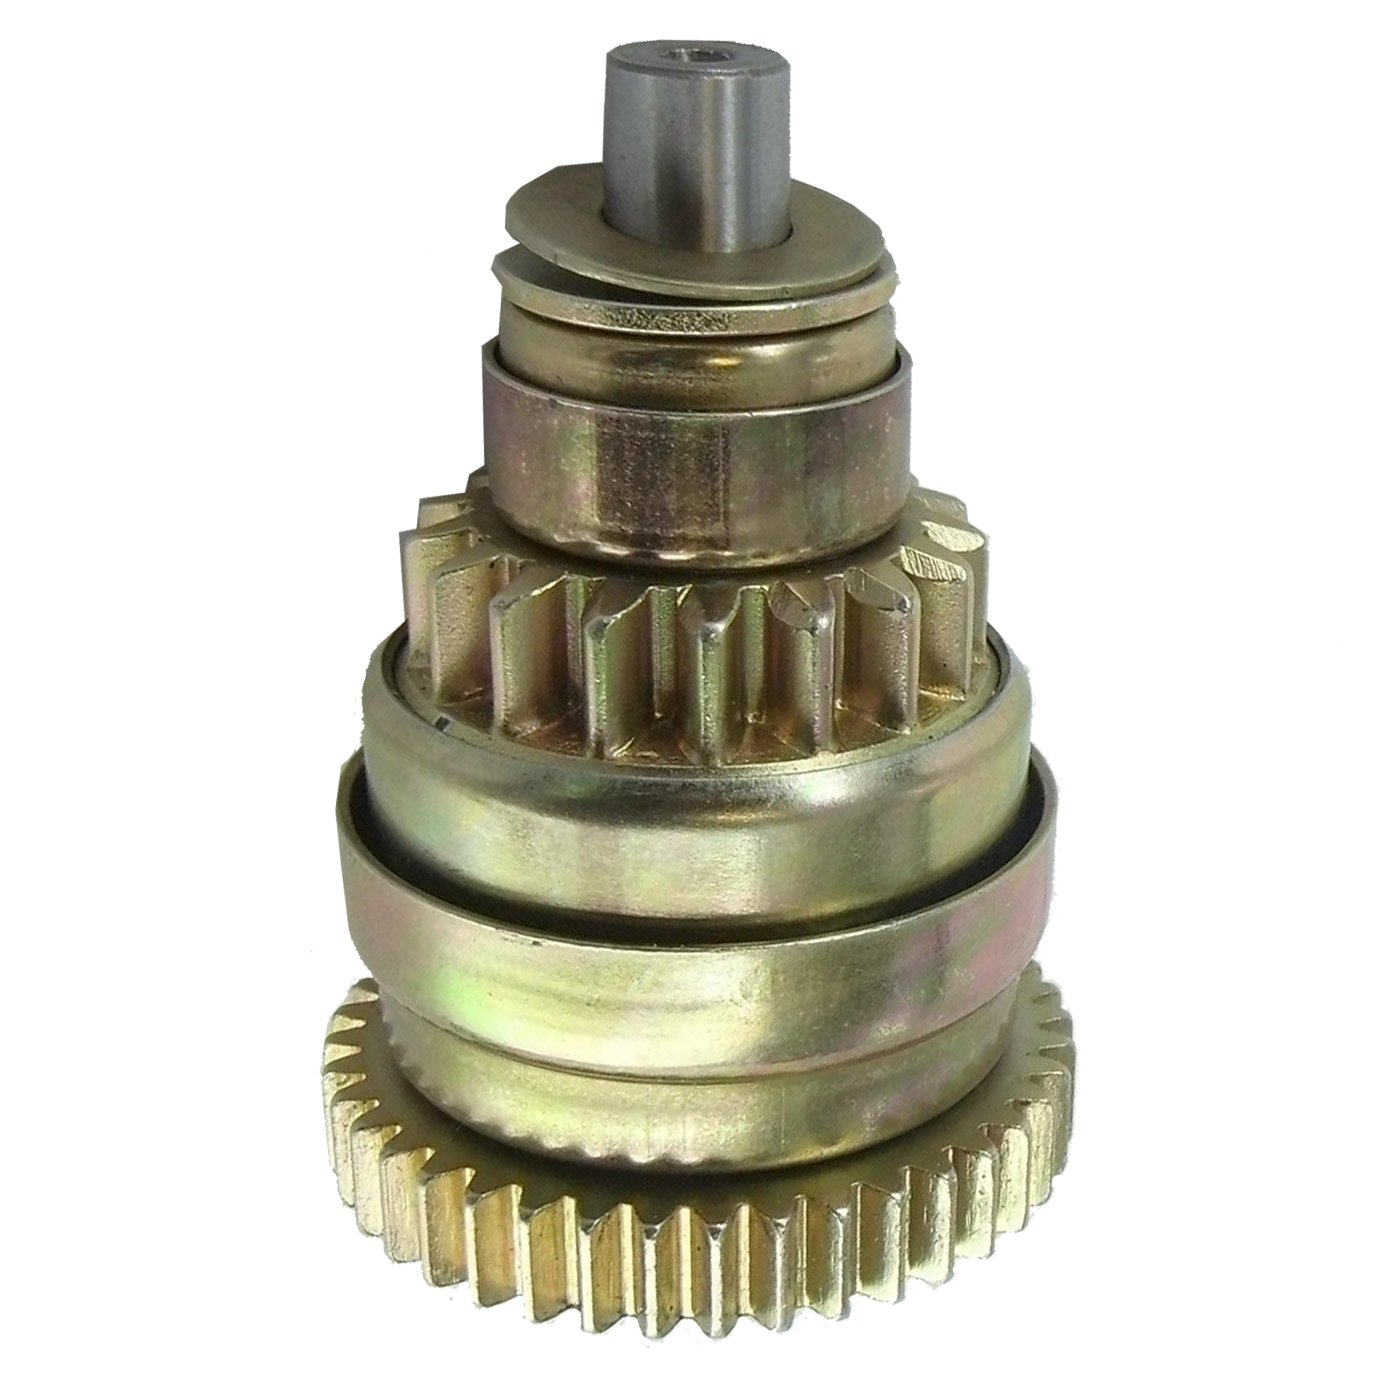 Starter Drive Polaris Big Boss 250 350 400 500 2x4 4x6 6x6 1989 1990 1991 1992 1993 1994 1995 1996 1997 1998 1999 2000 2001 2002 3085394 3087030 ATV NEW Crank-N-Charge